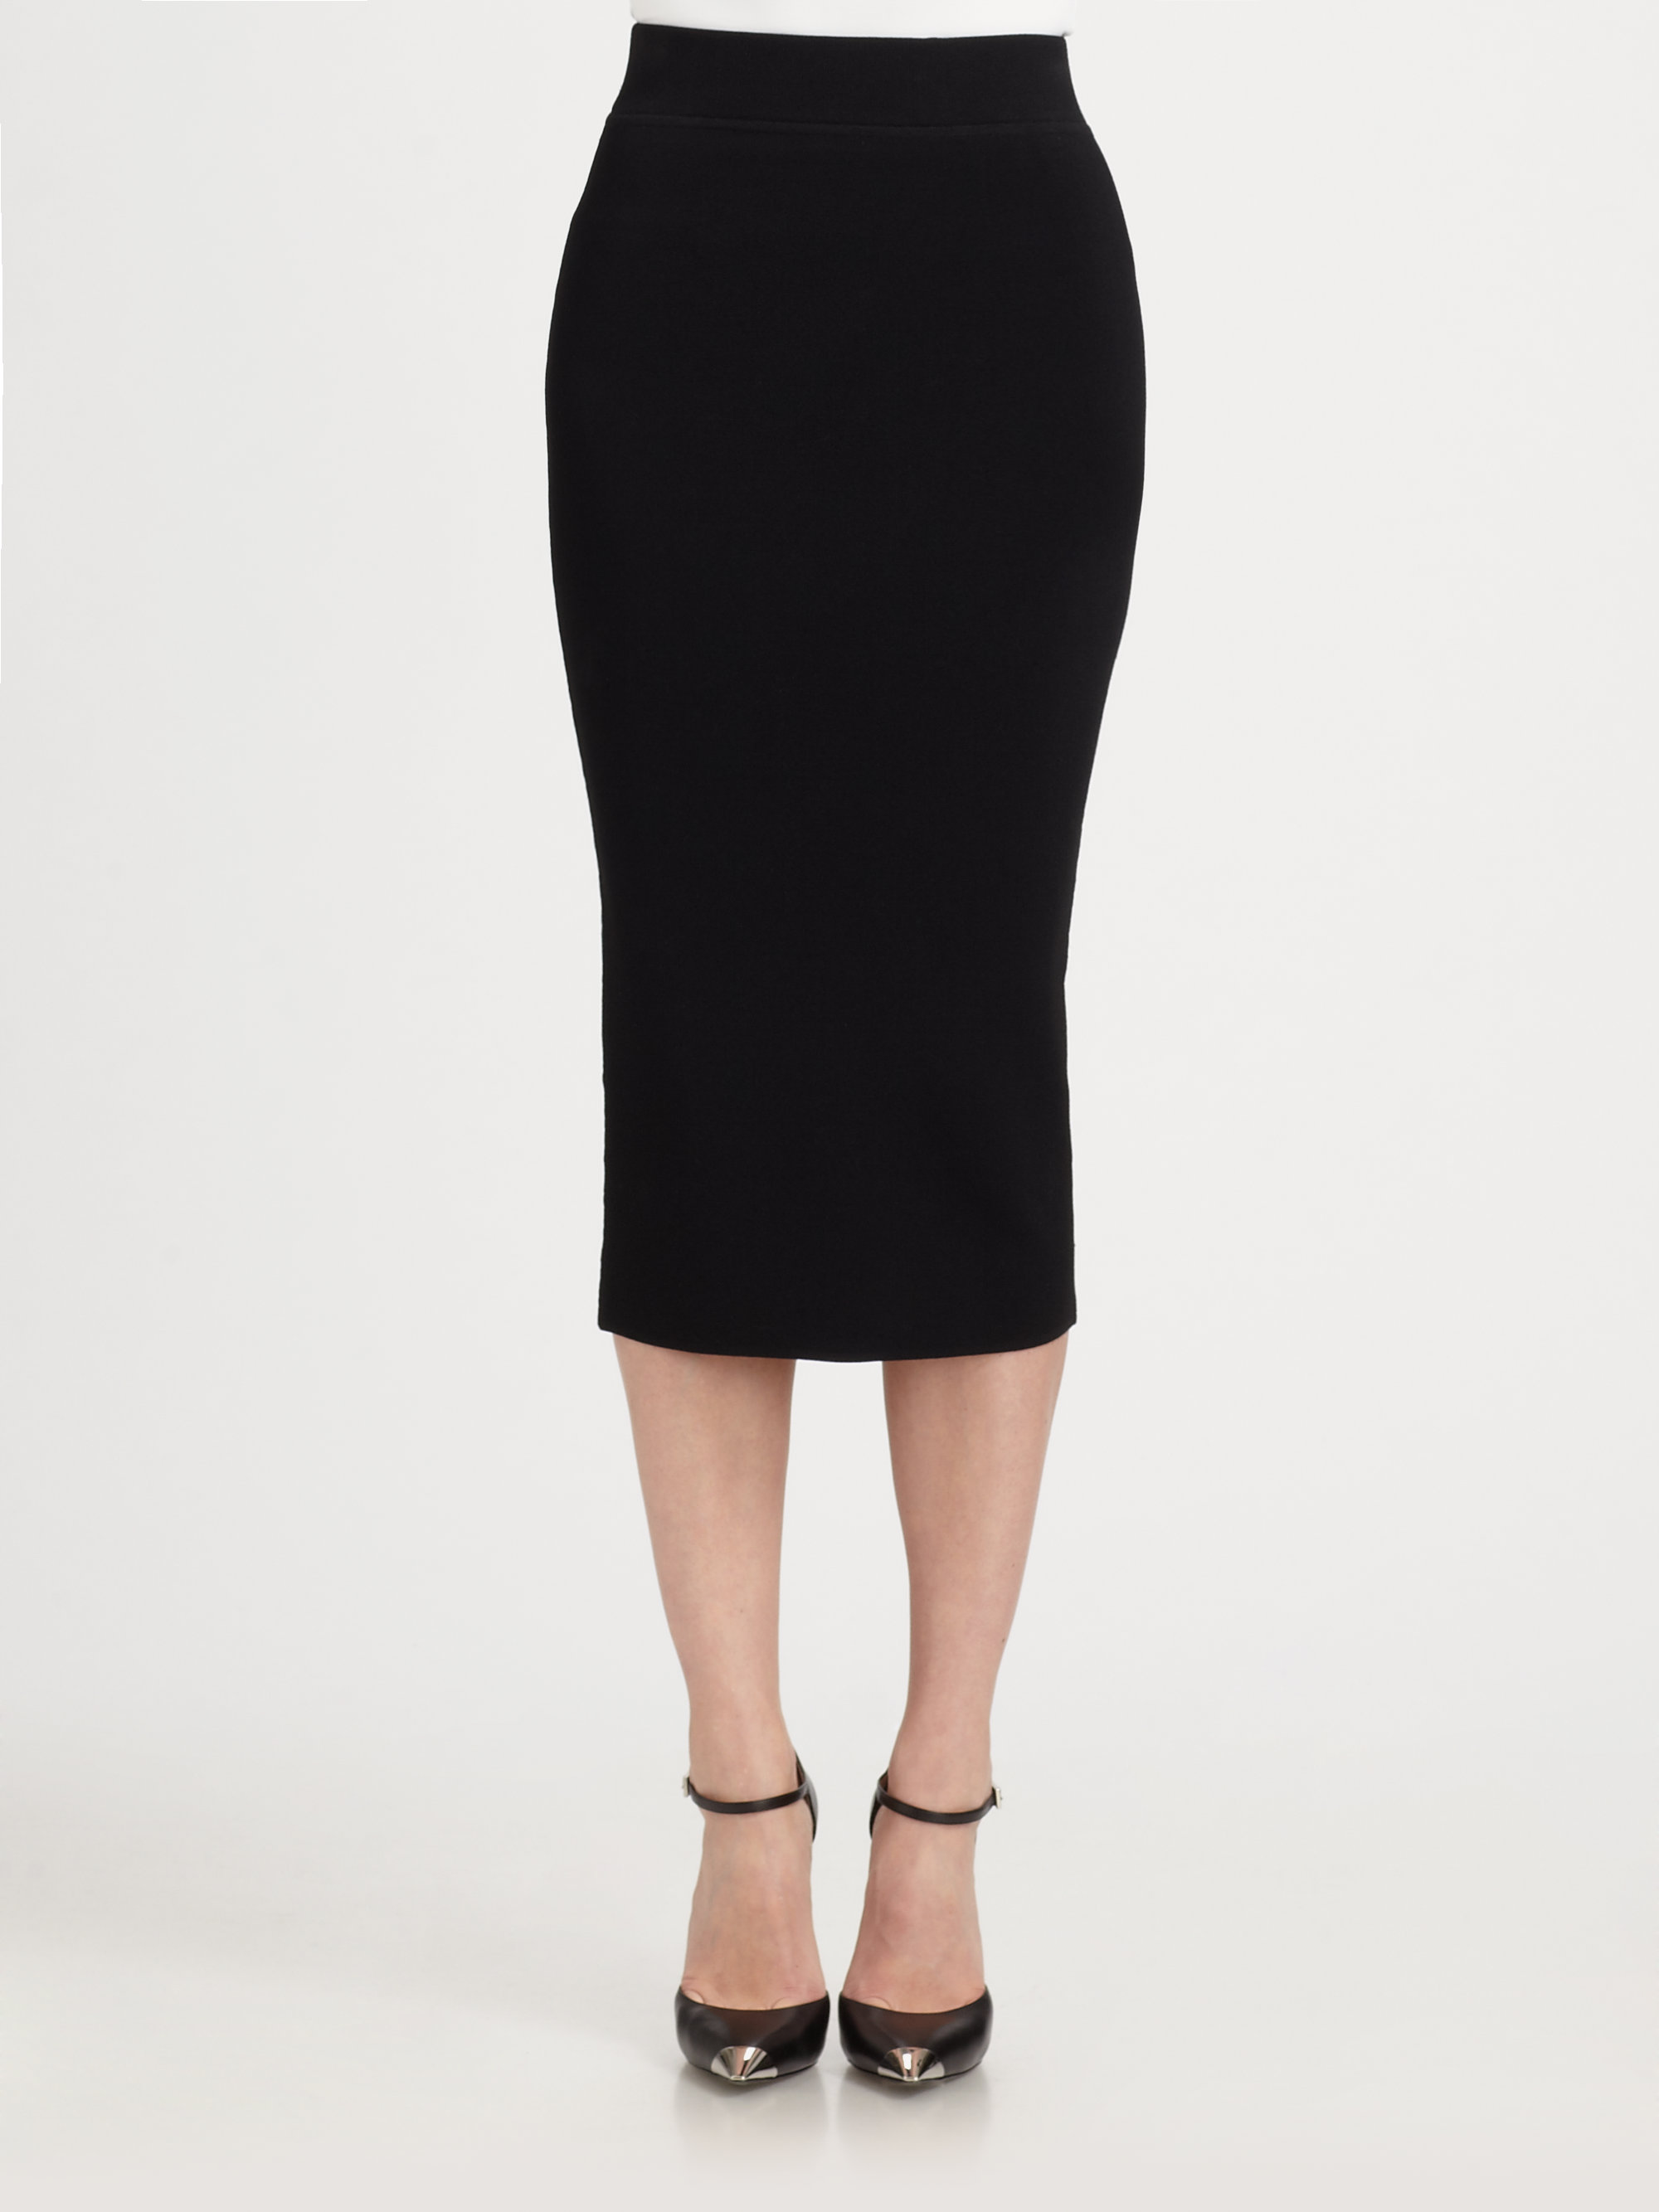 black stretch pencil skirt redskirtz